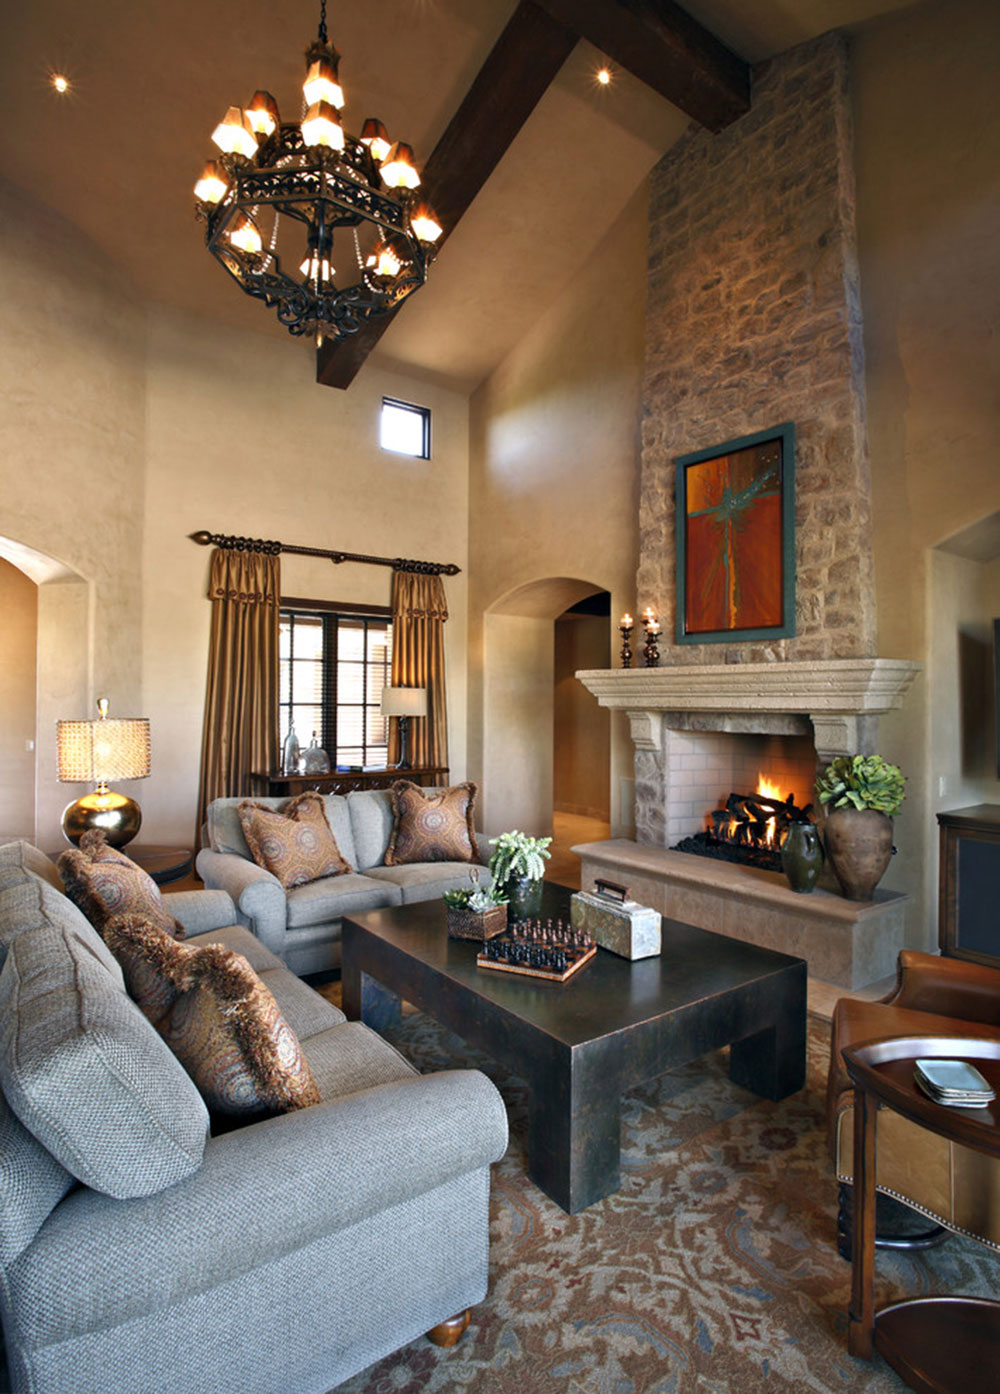 Fireplace cladding decoration ideas for a cozy home 6 fireplace cladding decoration ideas for a cozy home